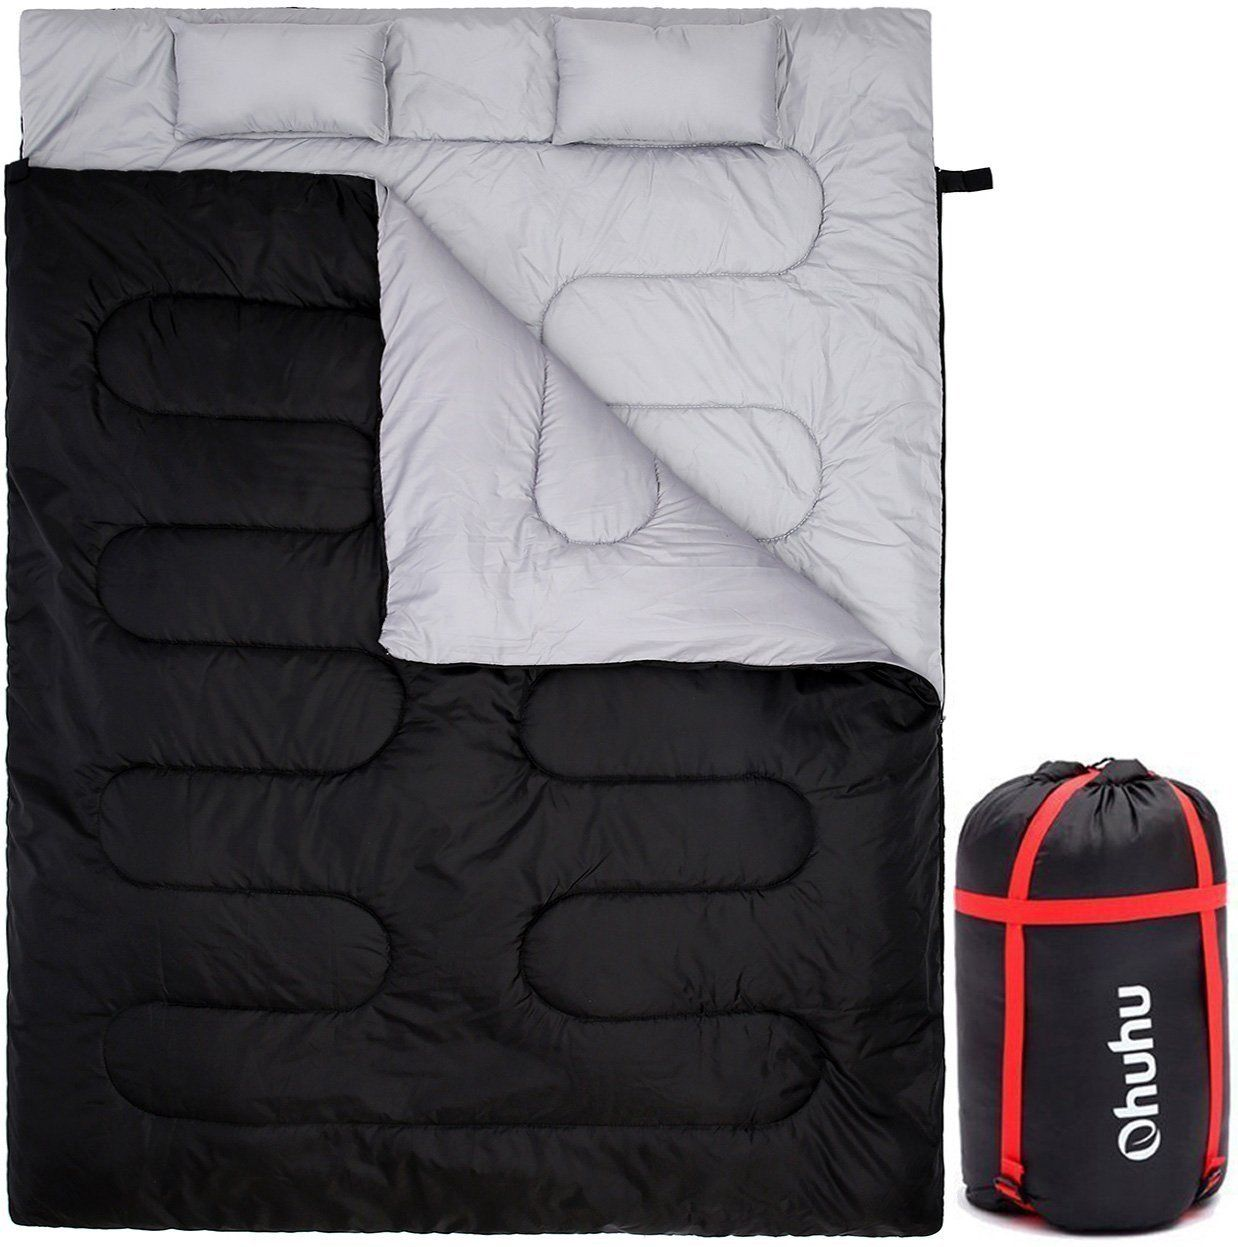 Double Sleeping Bag With 2 Pillows And A Carrying